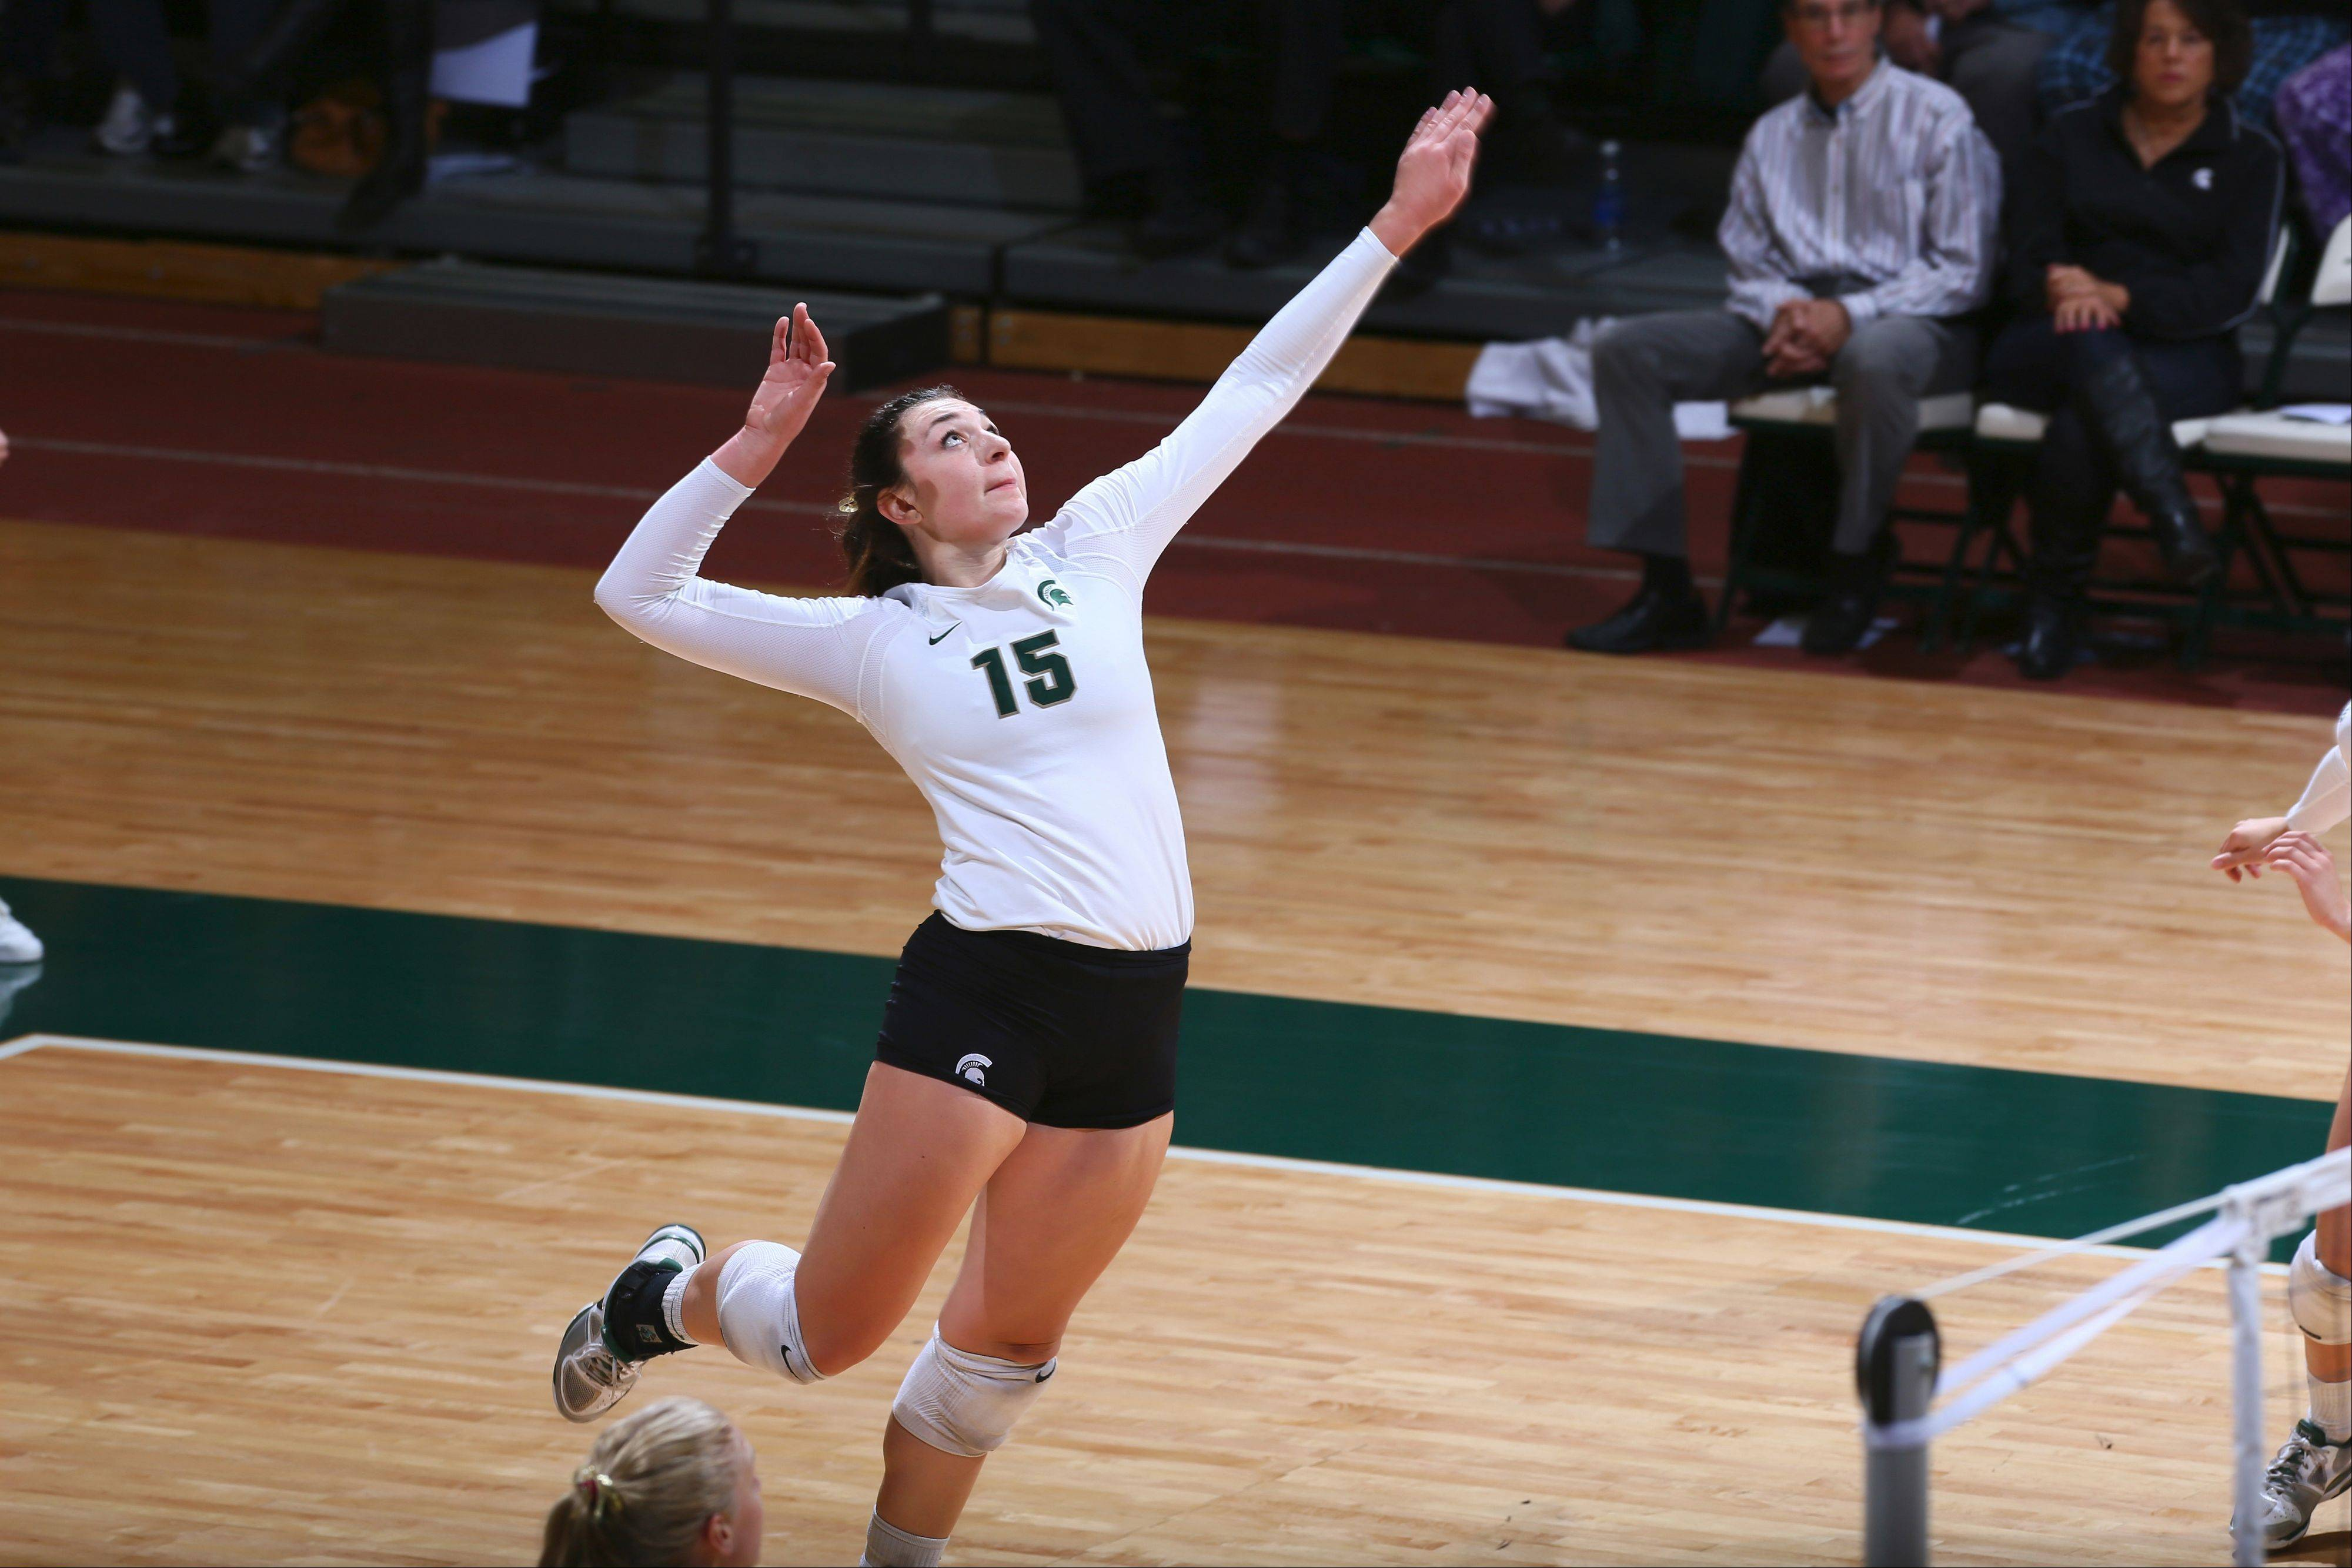 Michigan State outside hitter Lauren Wicinski of Geneva was a unanimous All-Big Ten First Team honoree in her first season in the conference after transferring from Northern Illinois University.